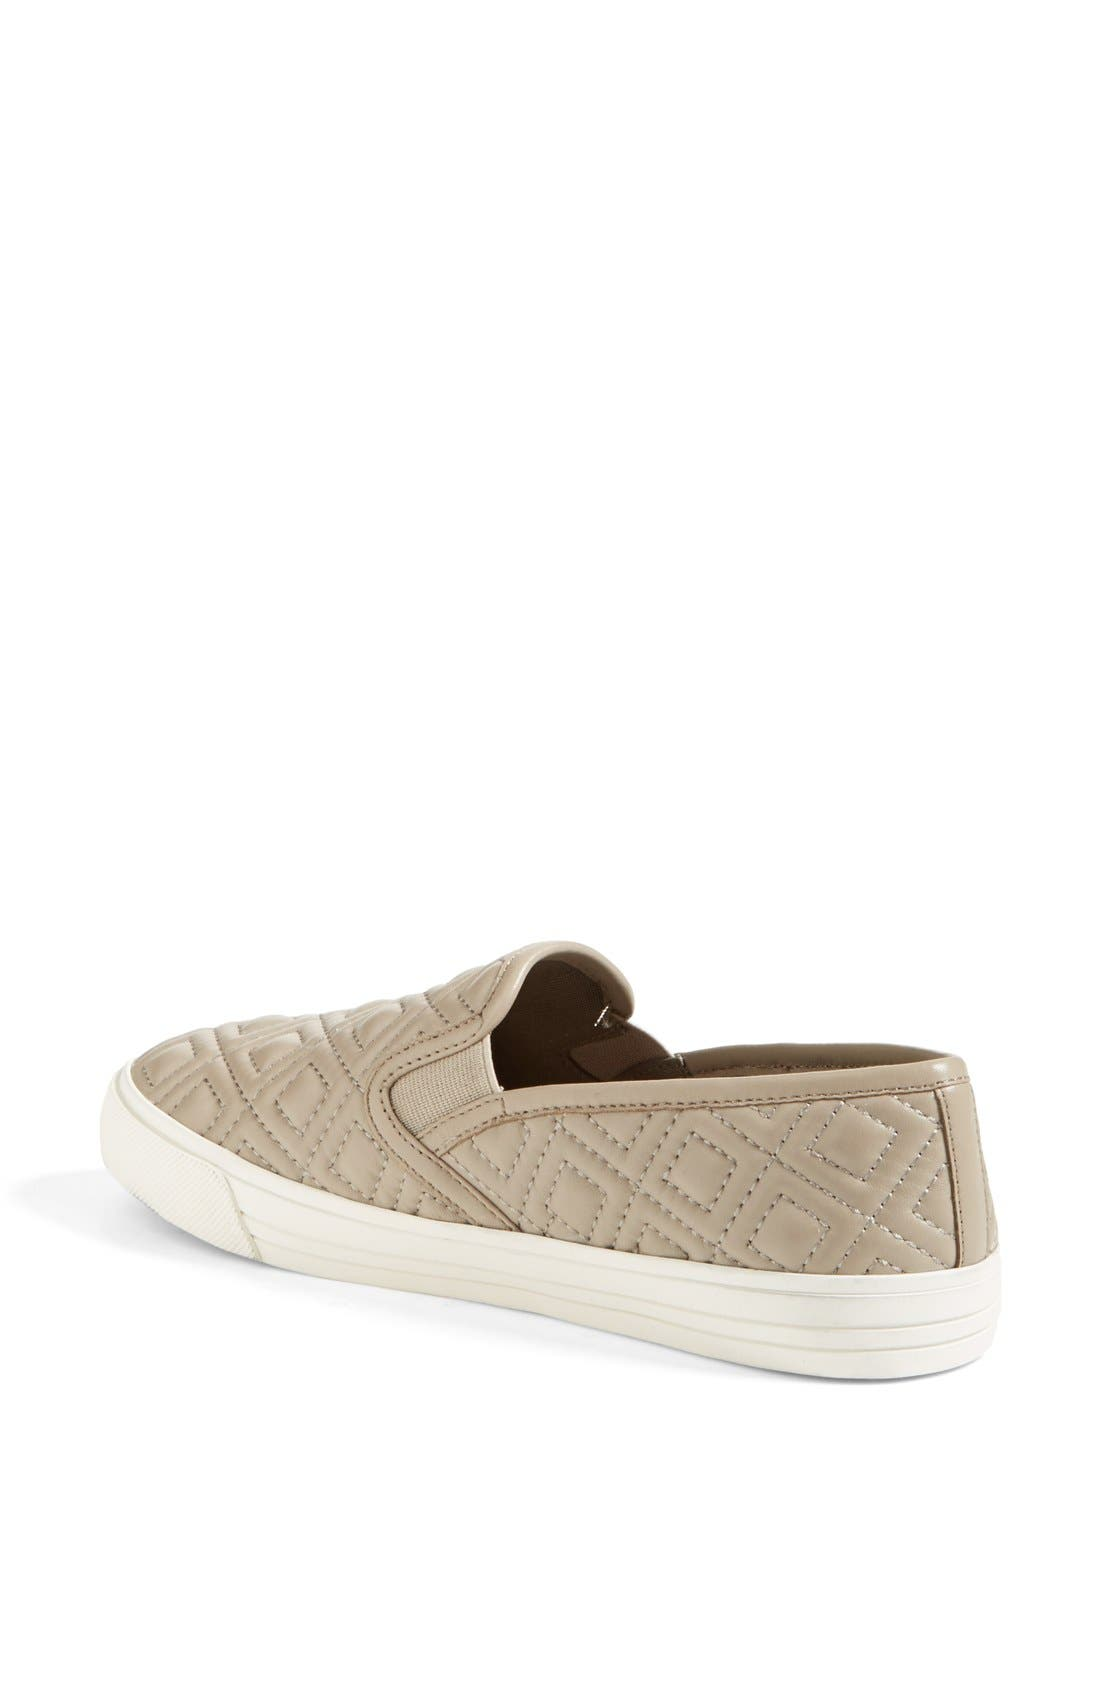 Alternate Image 2  - Tory Burch 'Jesse' Quilted Leather Sneaker